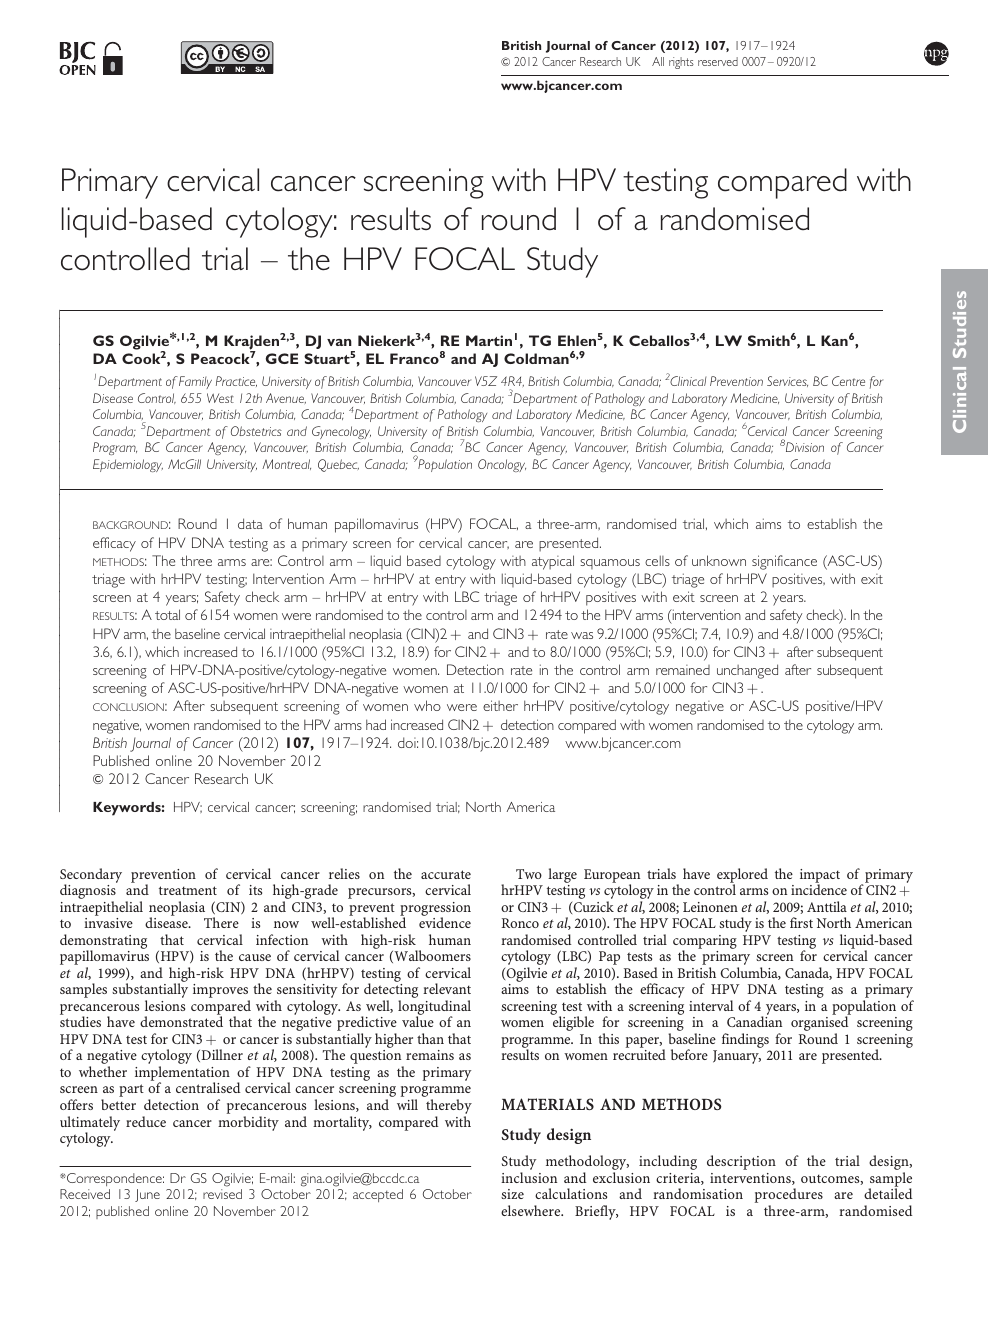 hpv research journal